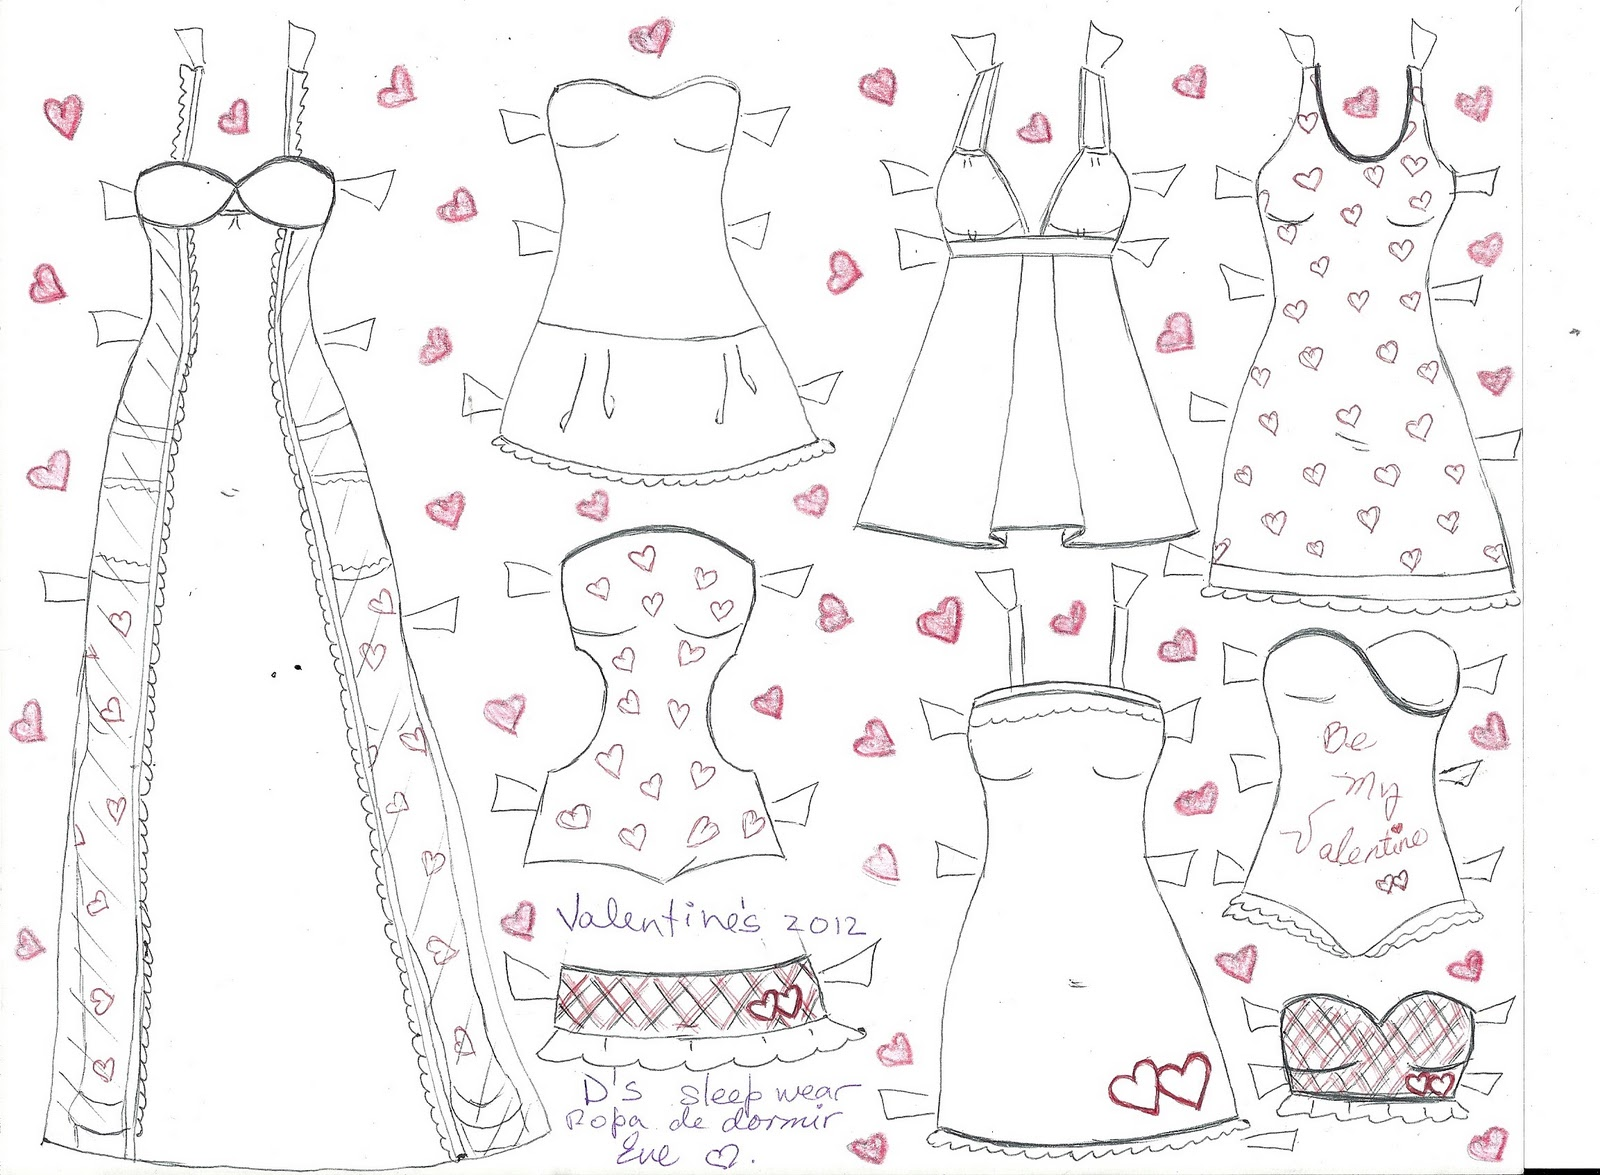 Paper Doll Eve D S Valentines Sleep Wear Ropa De Dormir